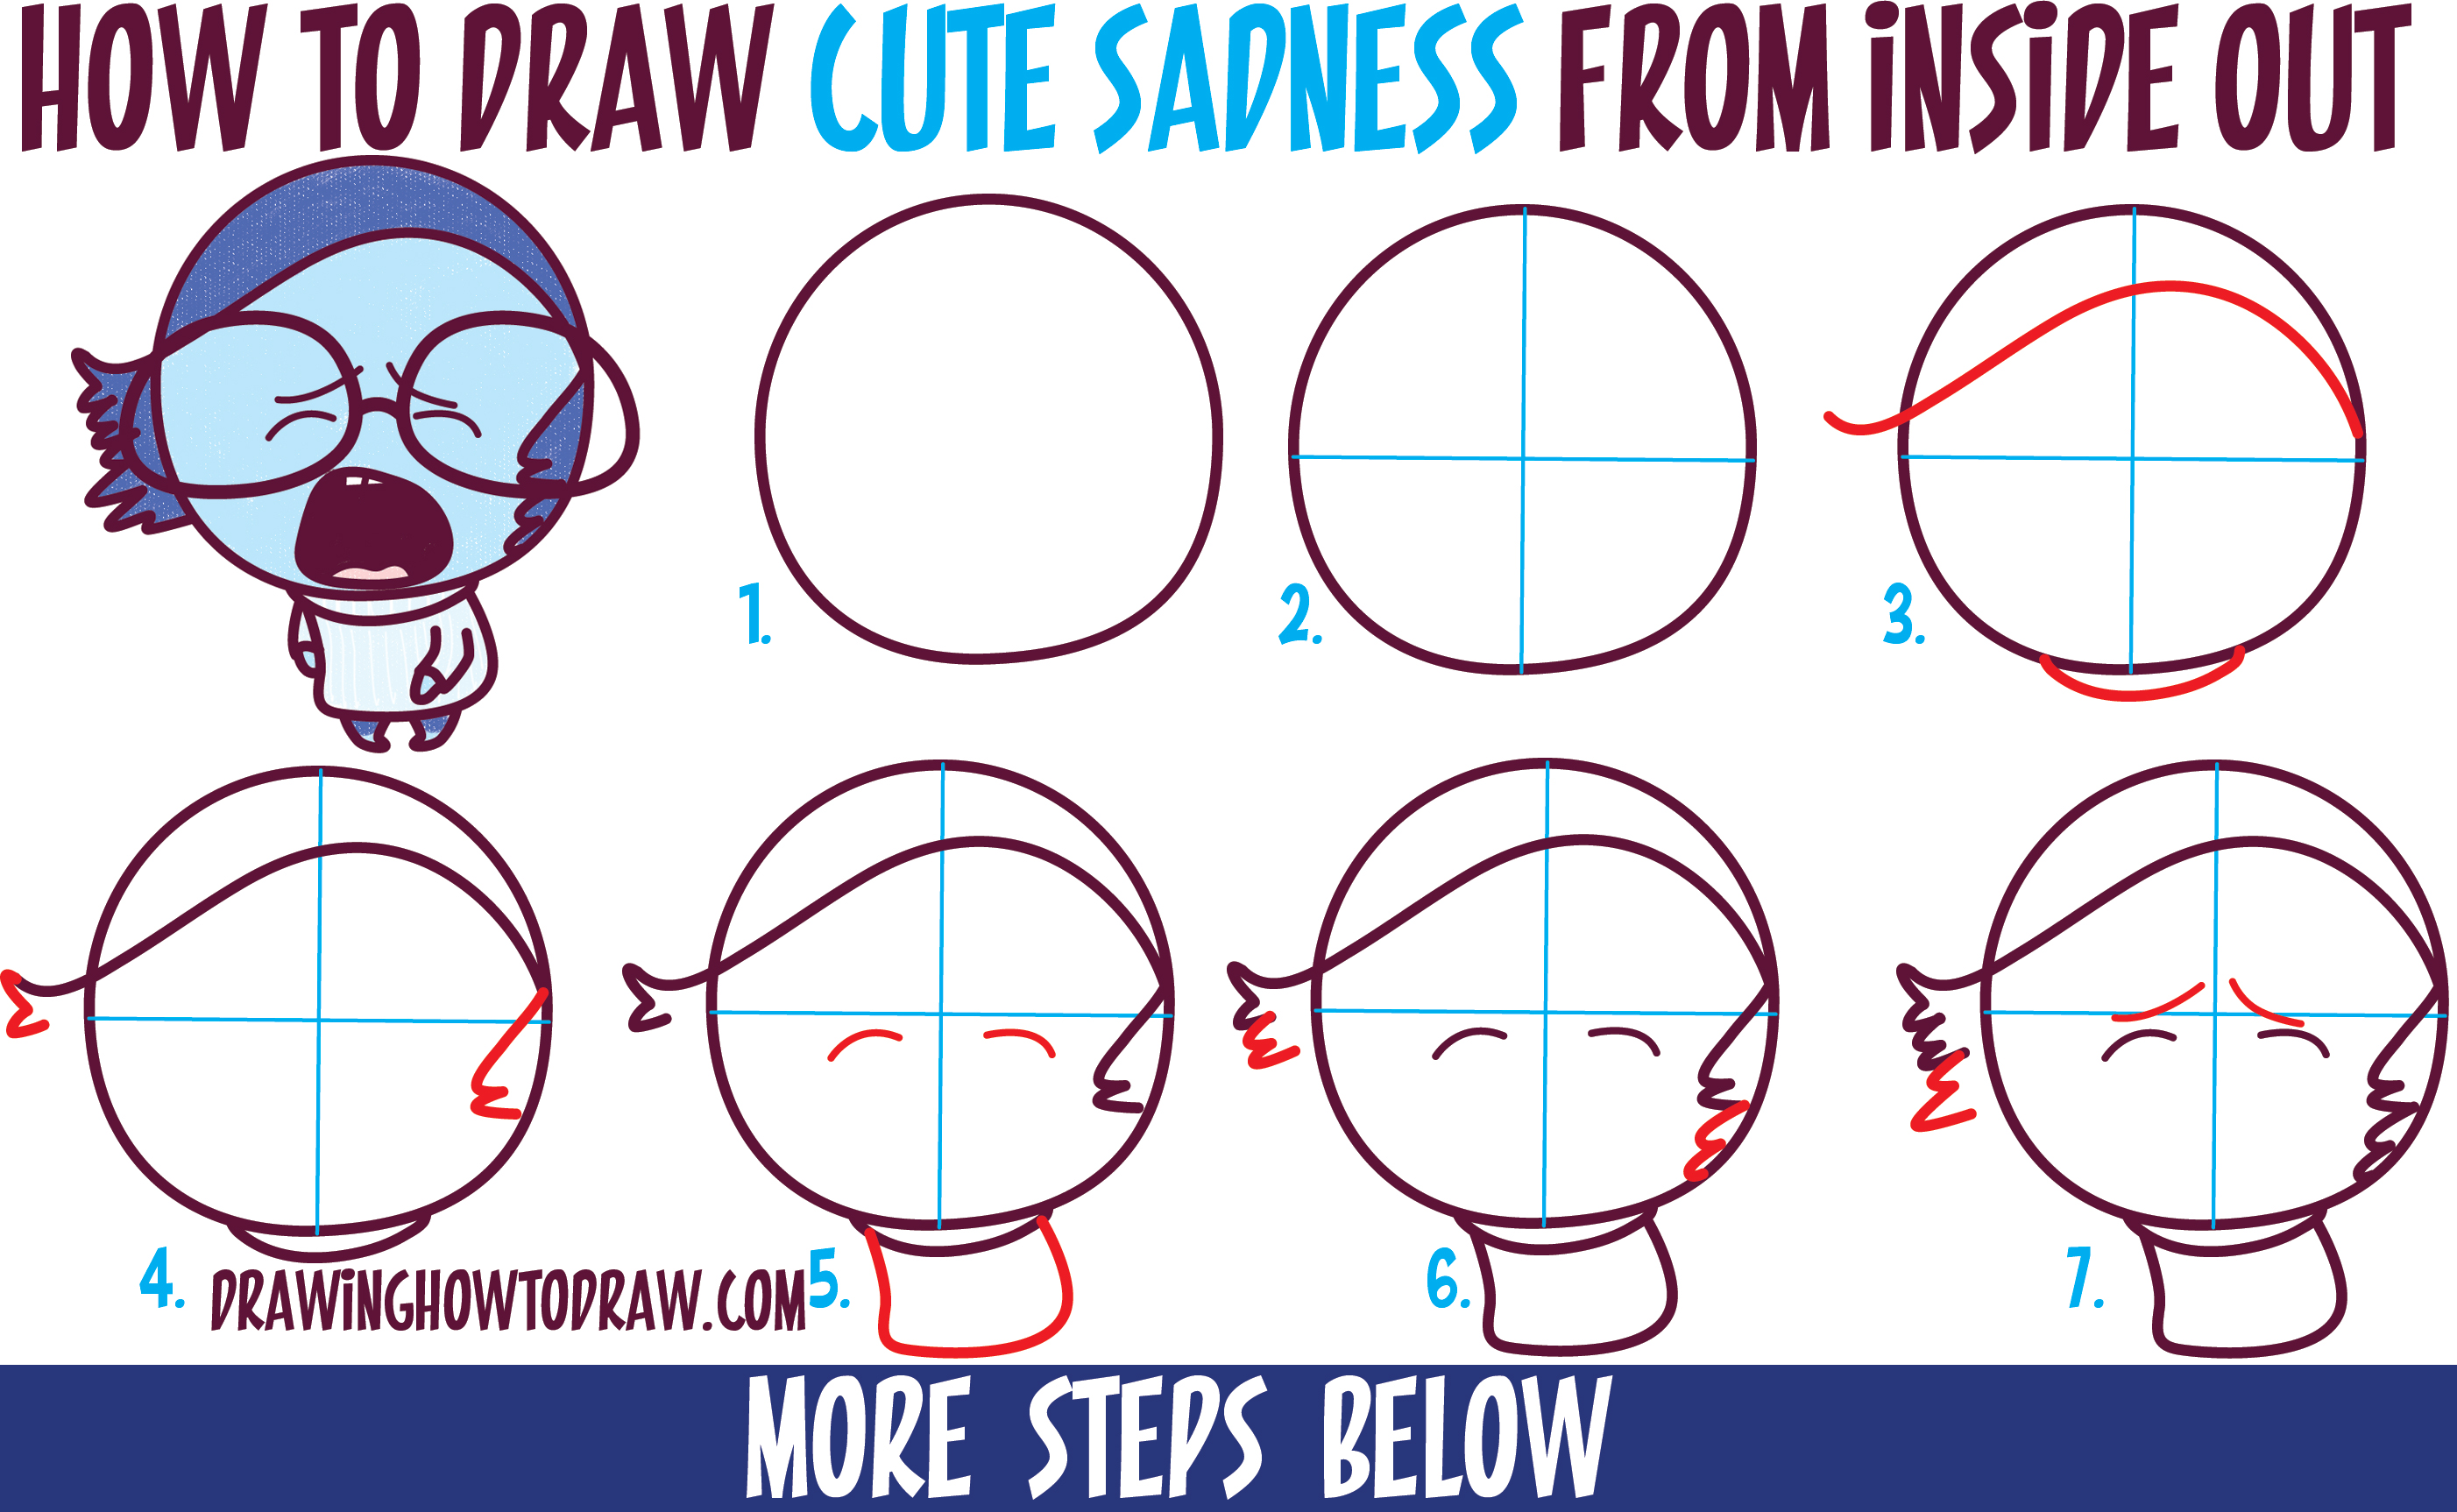 How to Draw Cute Kawaii / Chibi Sadness from Inside Out - Easy Step by Step Drawing Tutorial for Kids